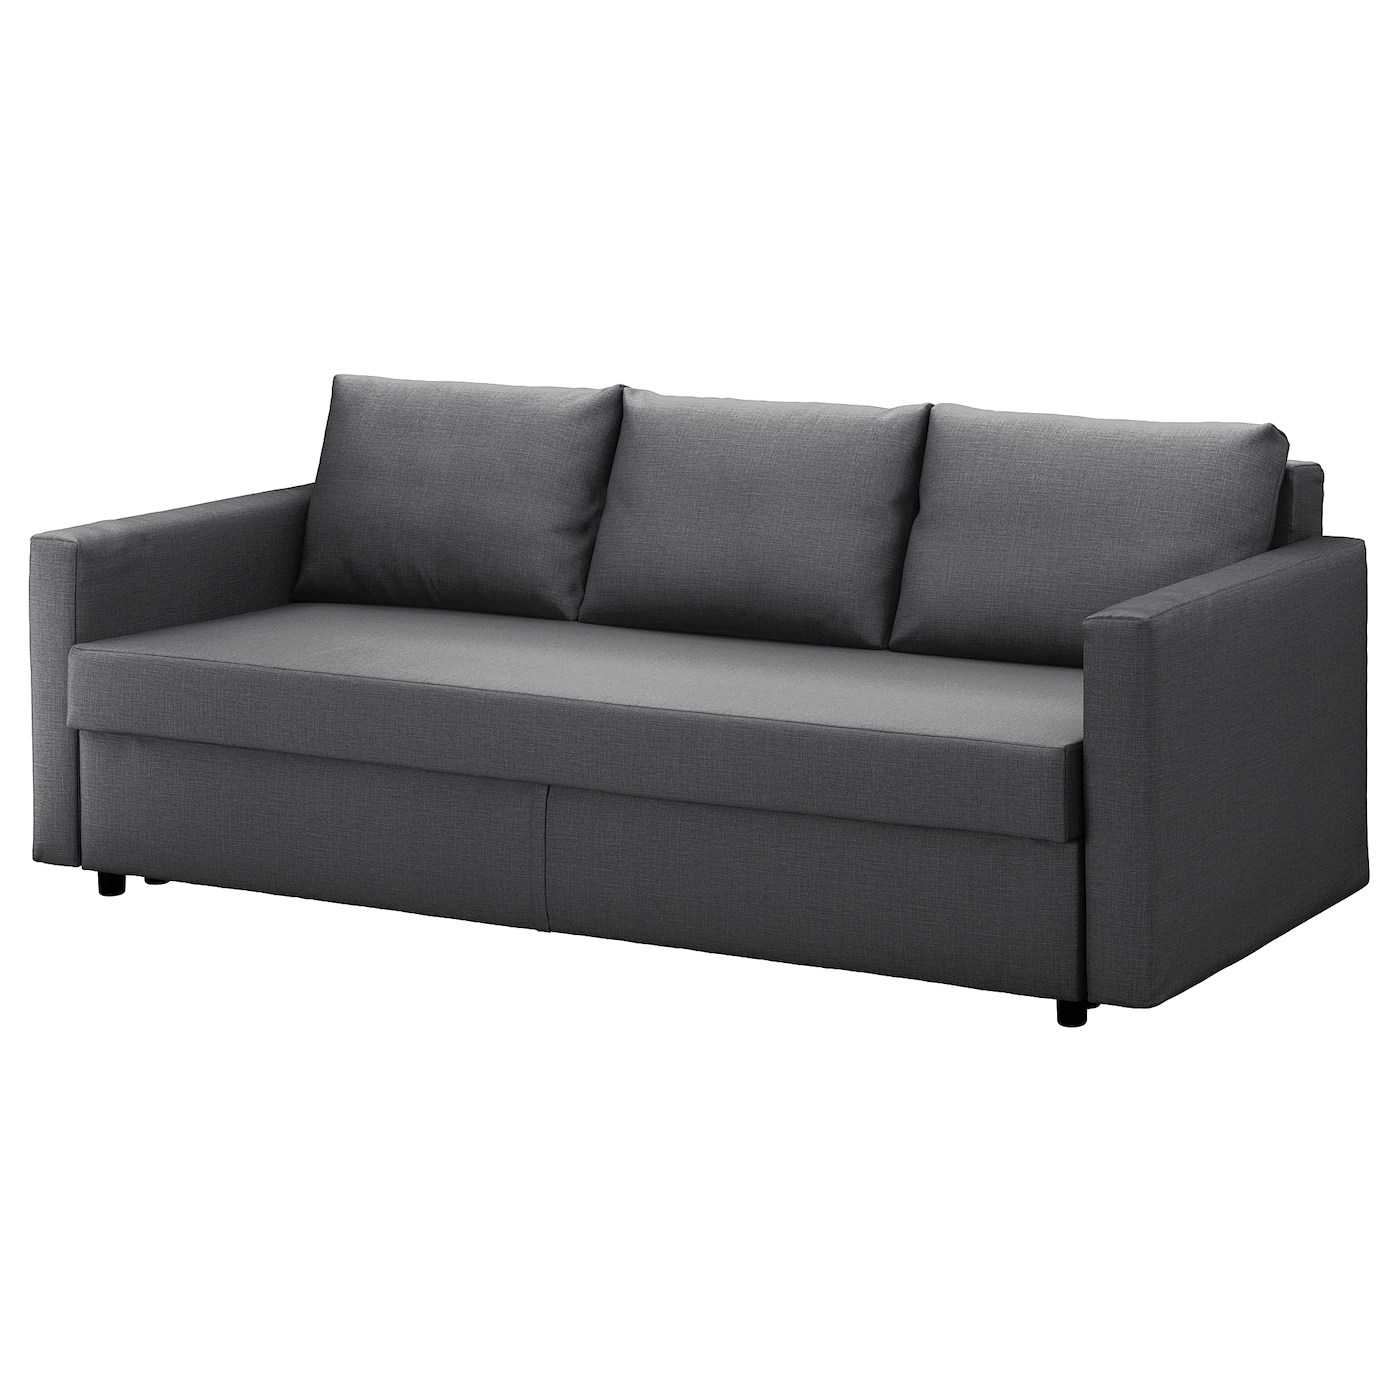 Sofa 3er Ikea Corner Sofa Beds Futons Chair Beds Ikea